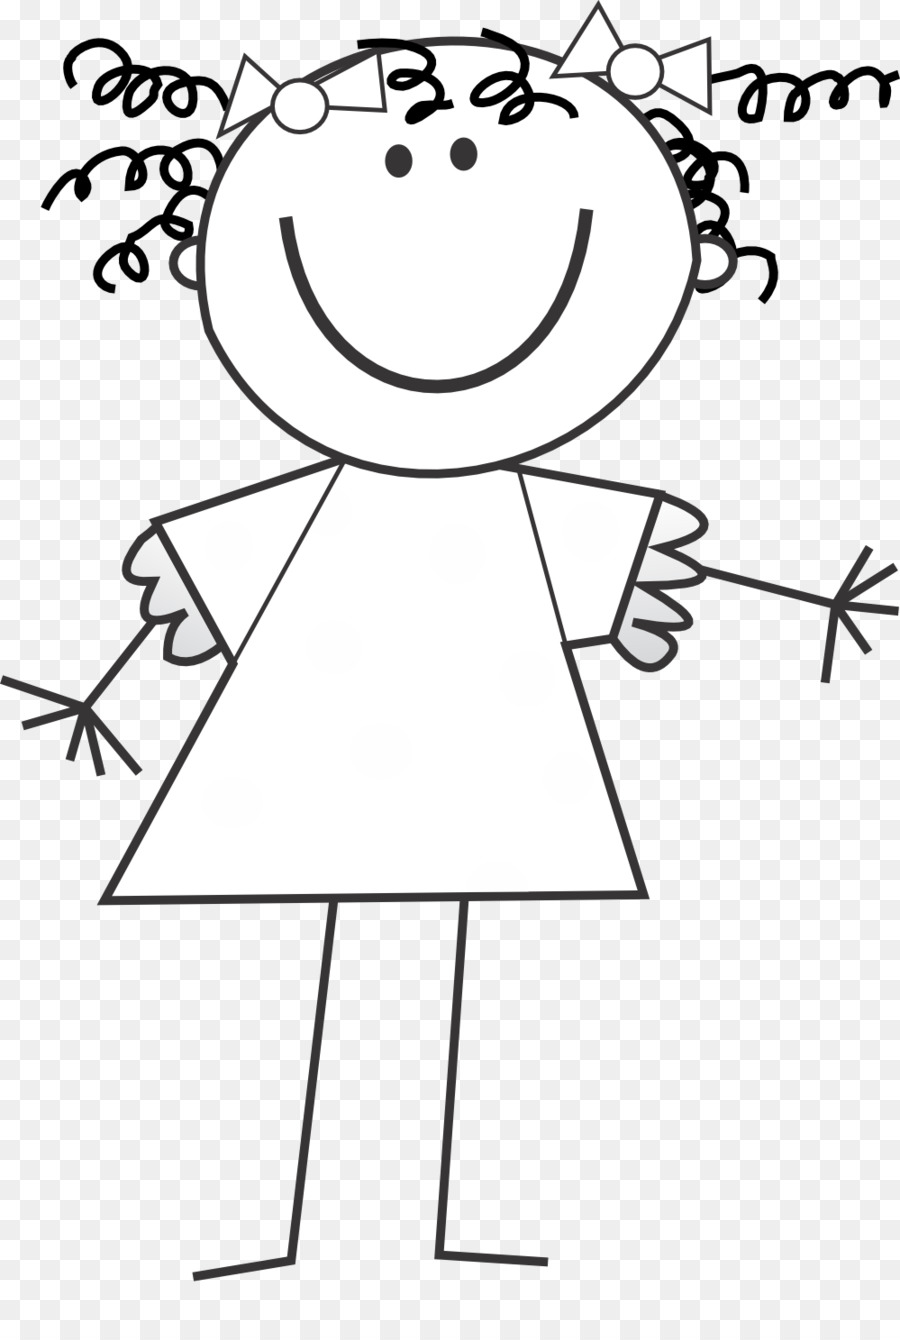 Stick Figure Kids Png Black And White & Free Stick Figure.